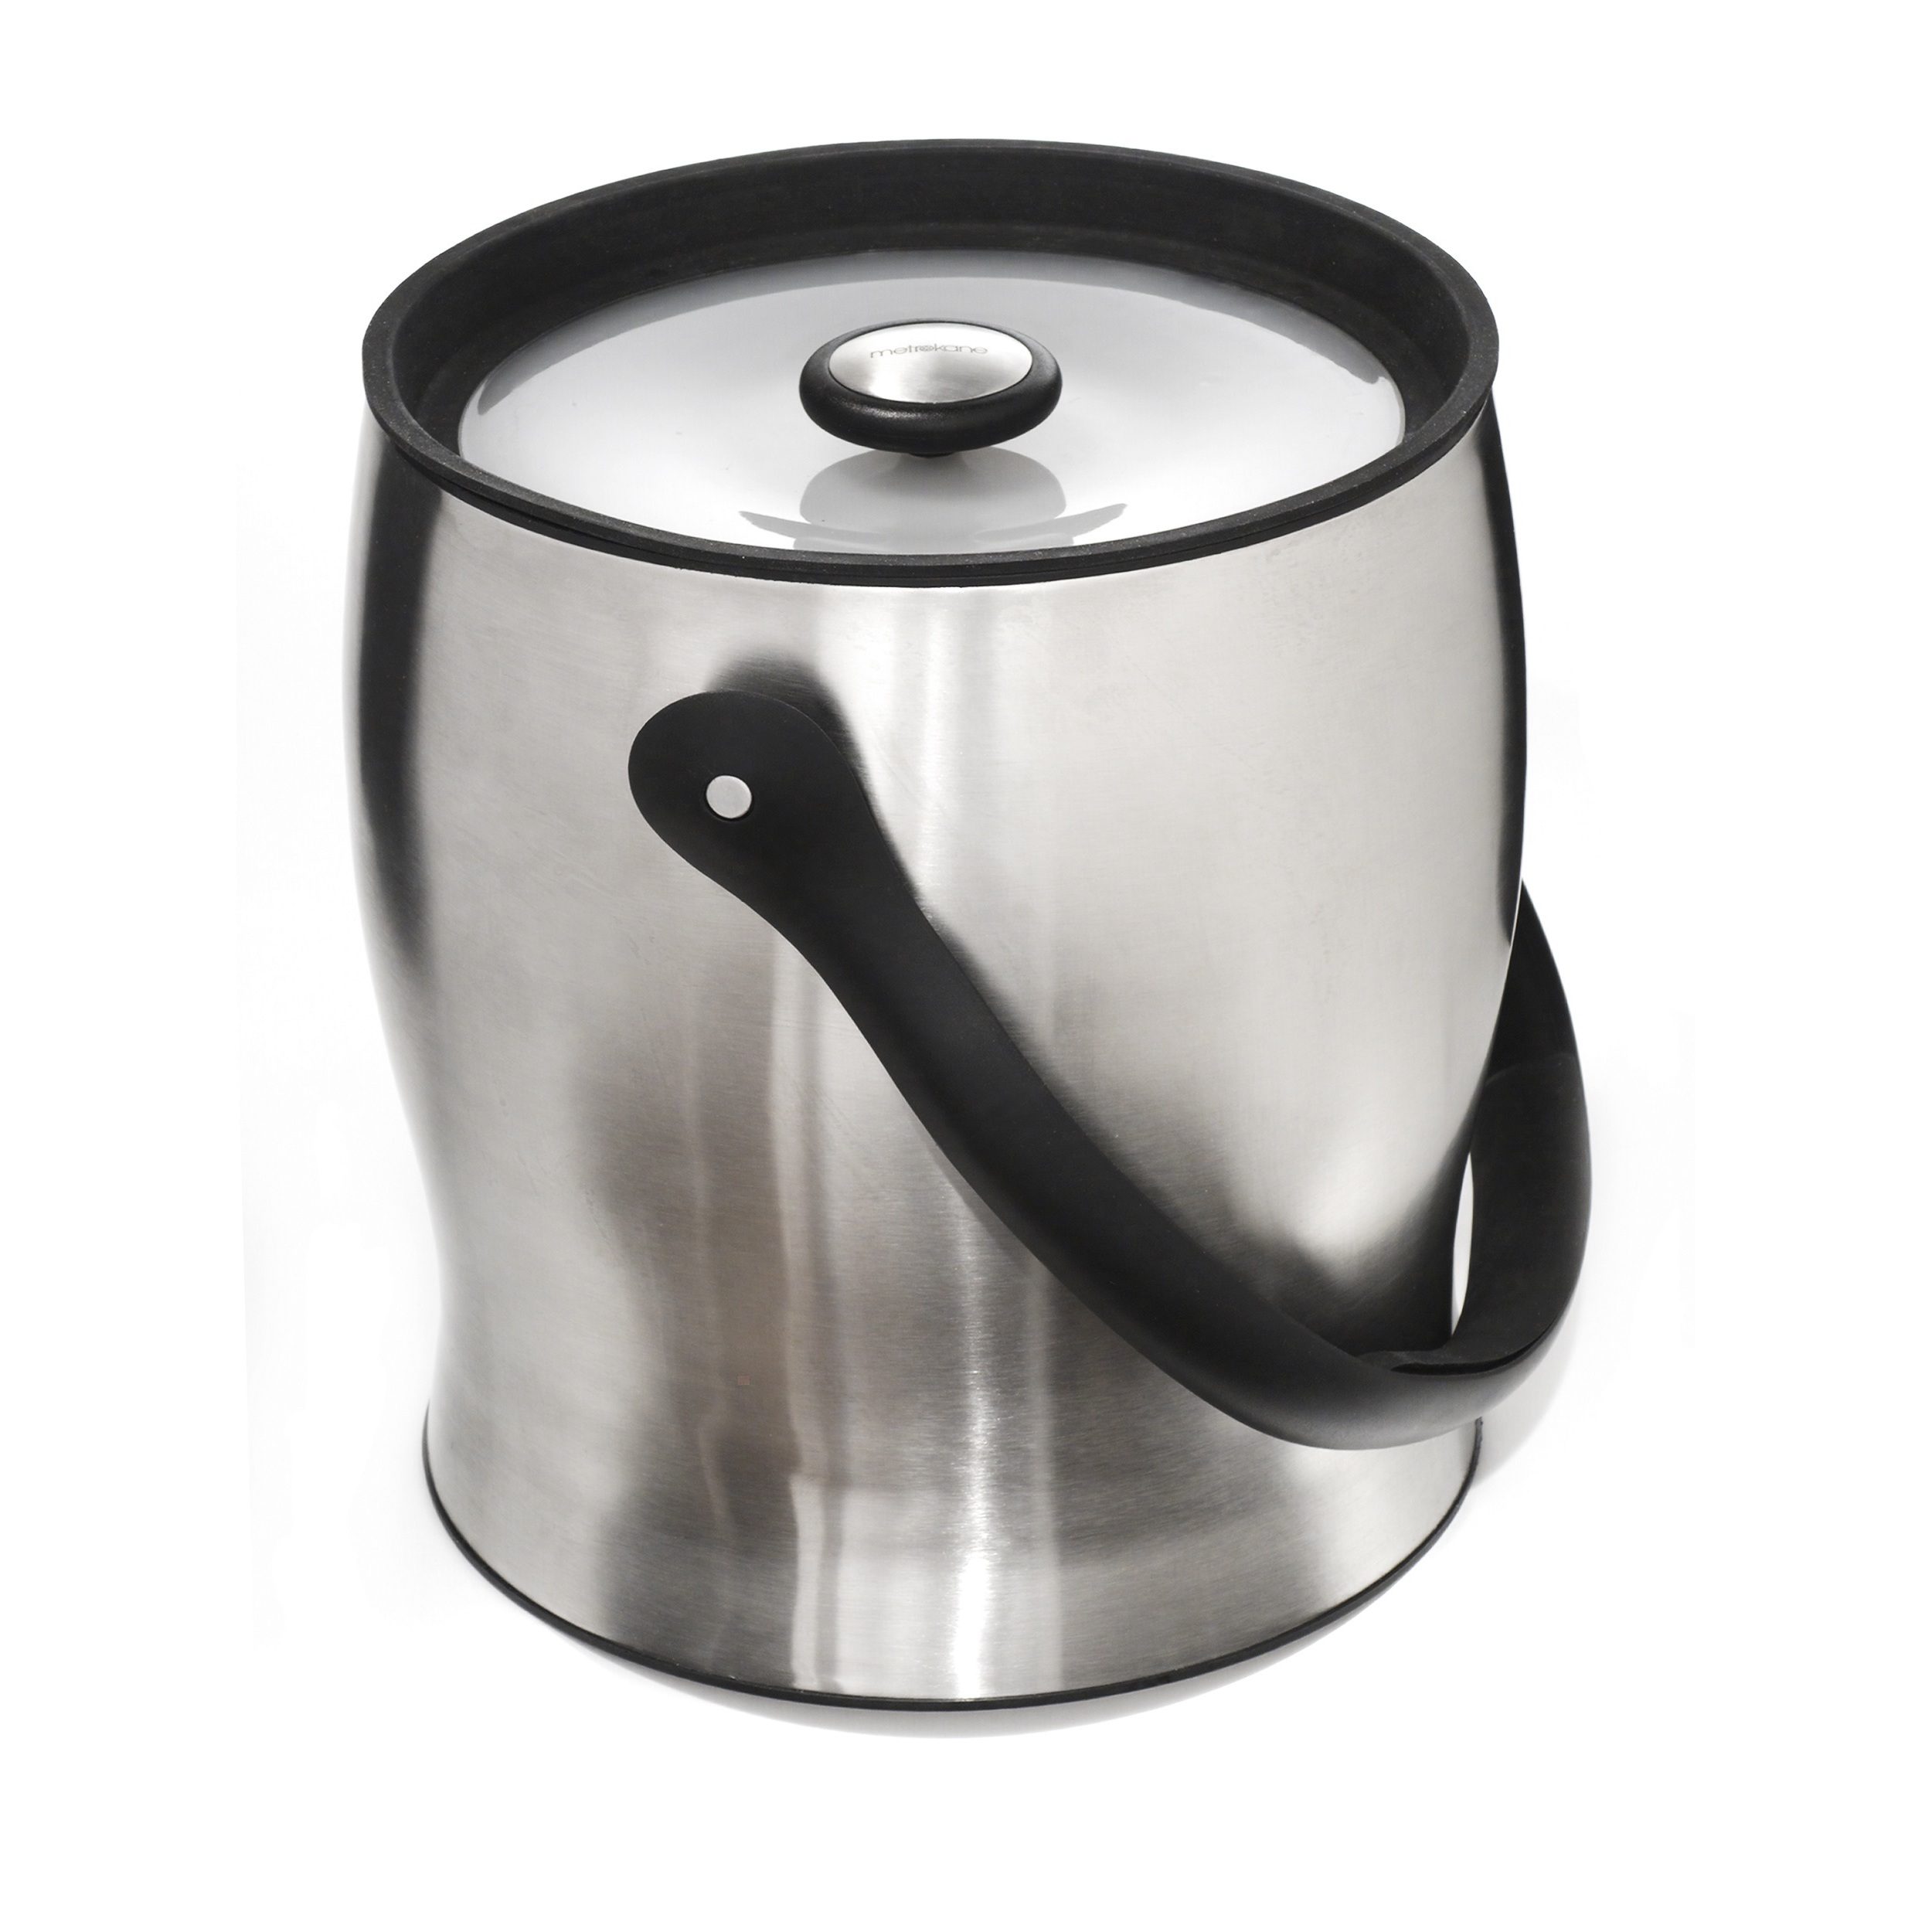 Rabbit Ice Bucket, 4 Quart, Stainless Steel